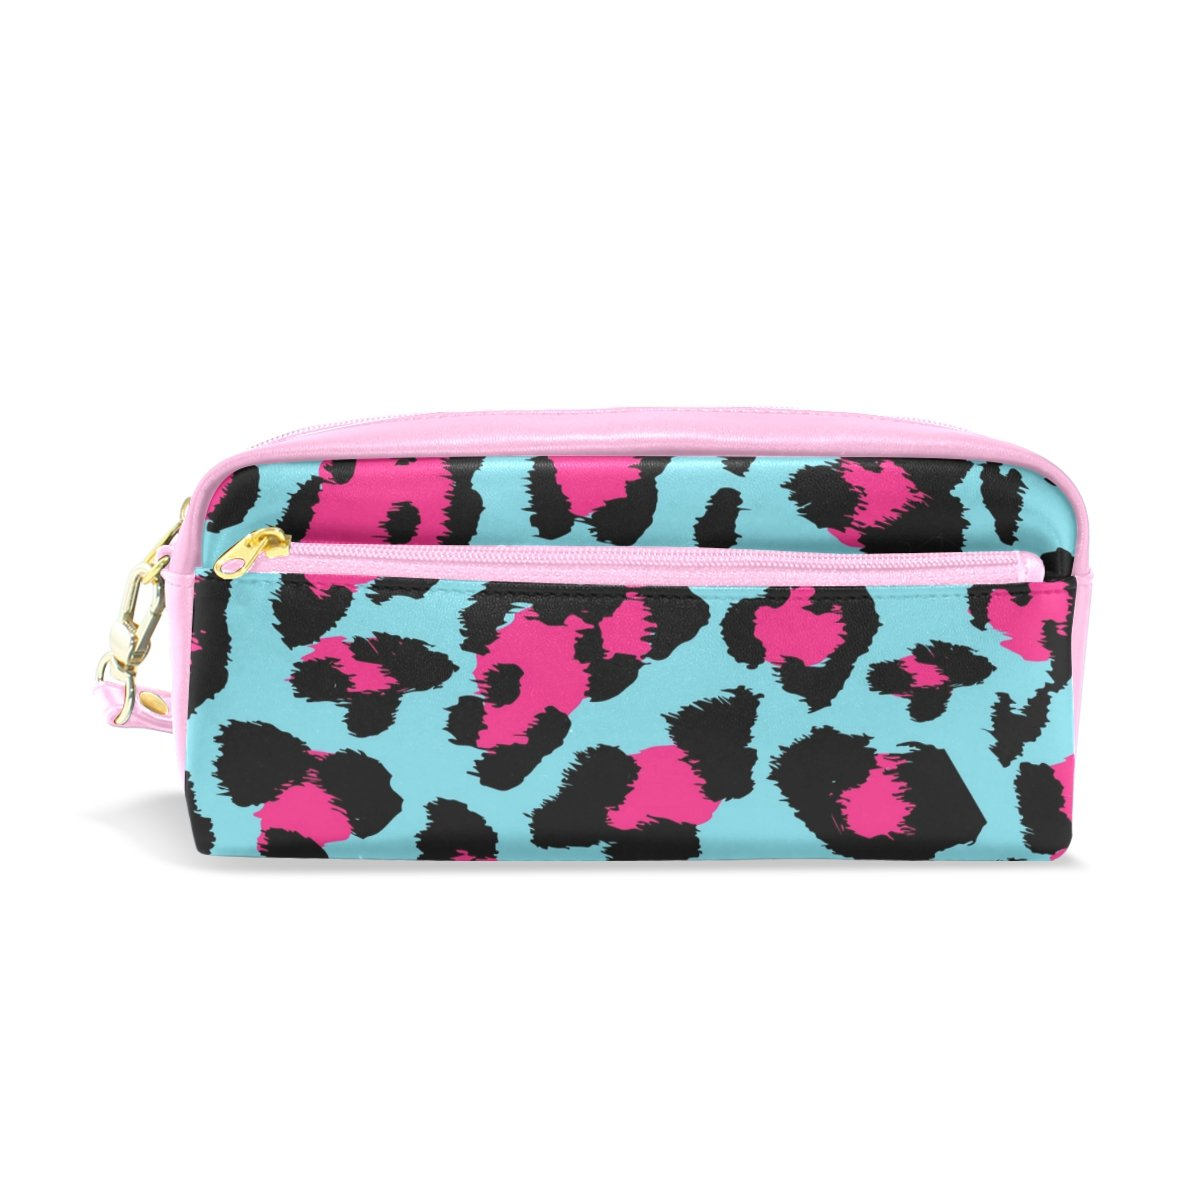 My Little Nest Beautiful Leopard Print Cosmetic Makeup Bag Pencil Case Multi Function School Office Organizer Bag with Zipper Closure